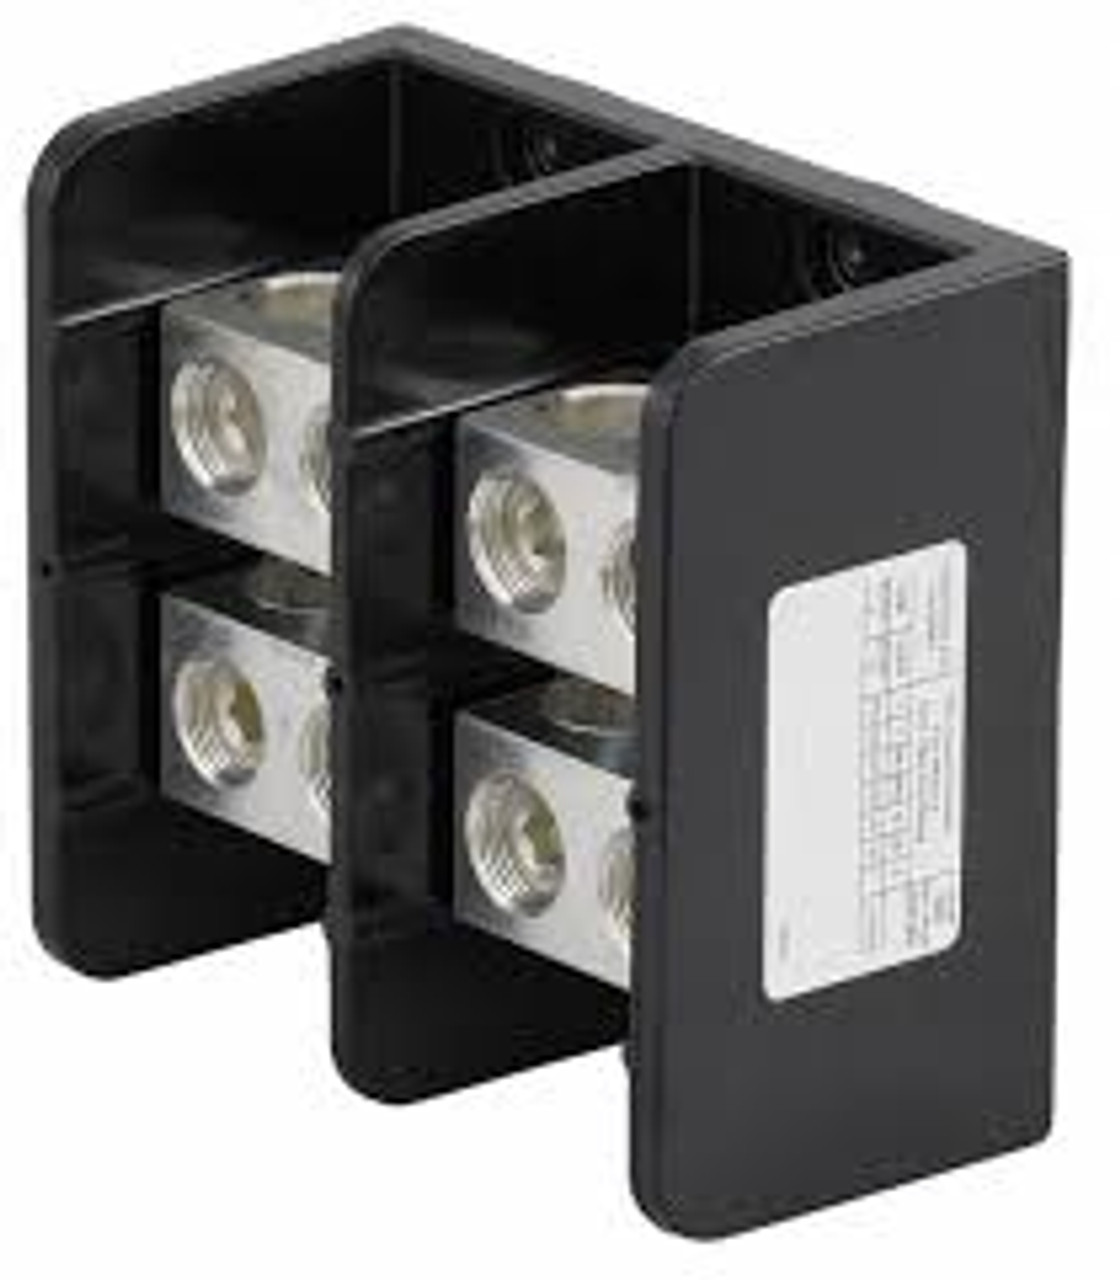 Square D distribution block 9080 LBA265202 (Picture is example of new)